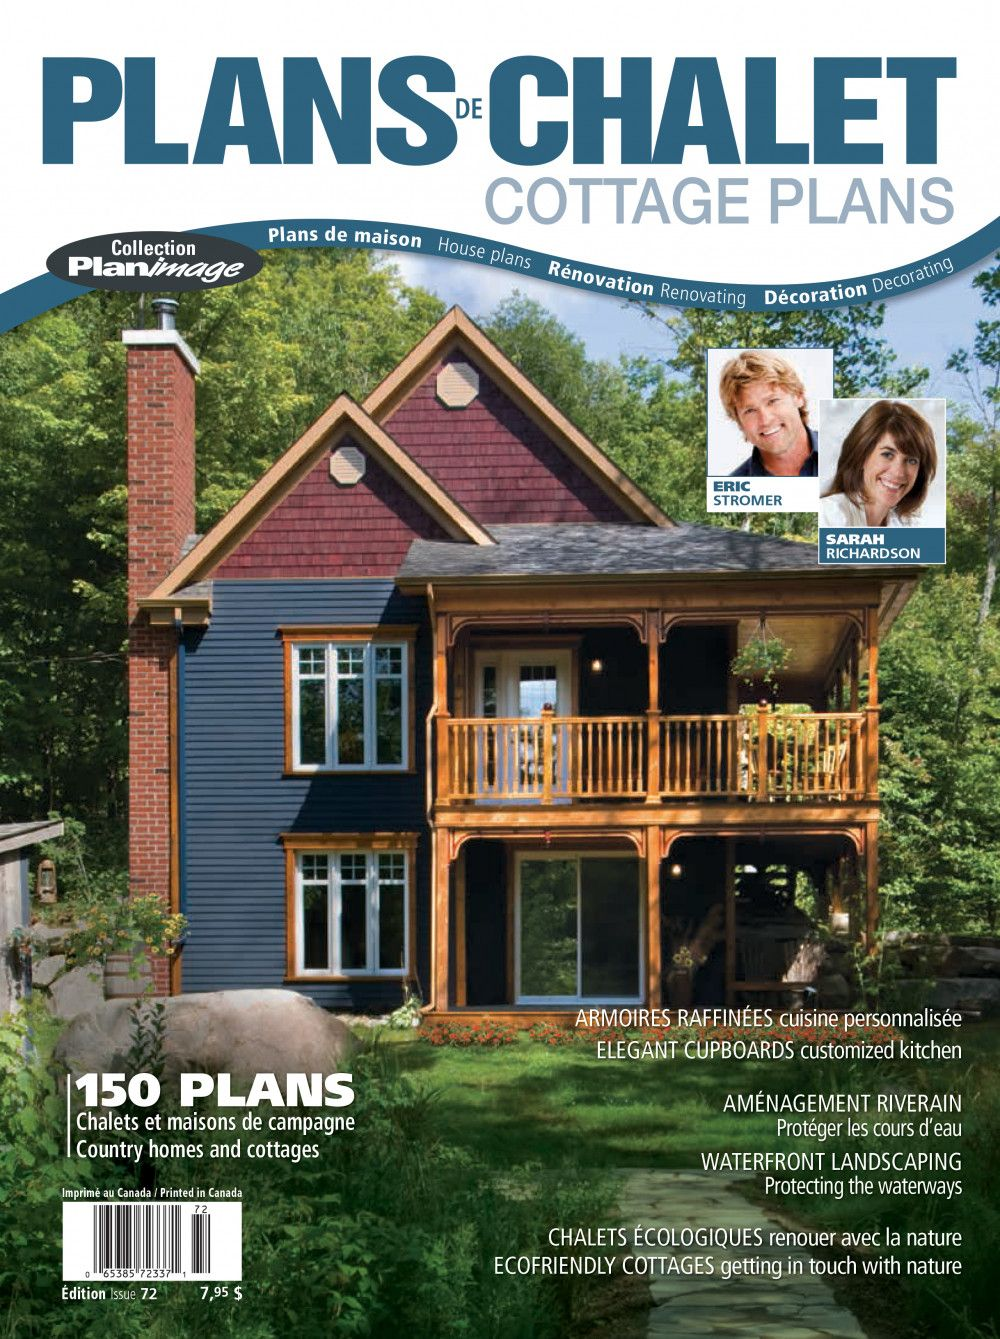 Planimage Is Celebrating It 15th Anniversary With A Brand New Magazine Dedicated To Cottages And Life I In 2020 Waterfront Property Architectural Services Cottage Plan